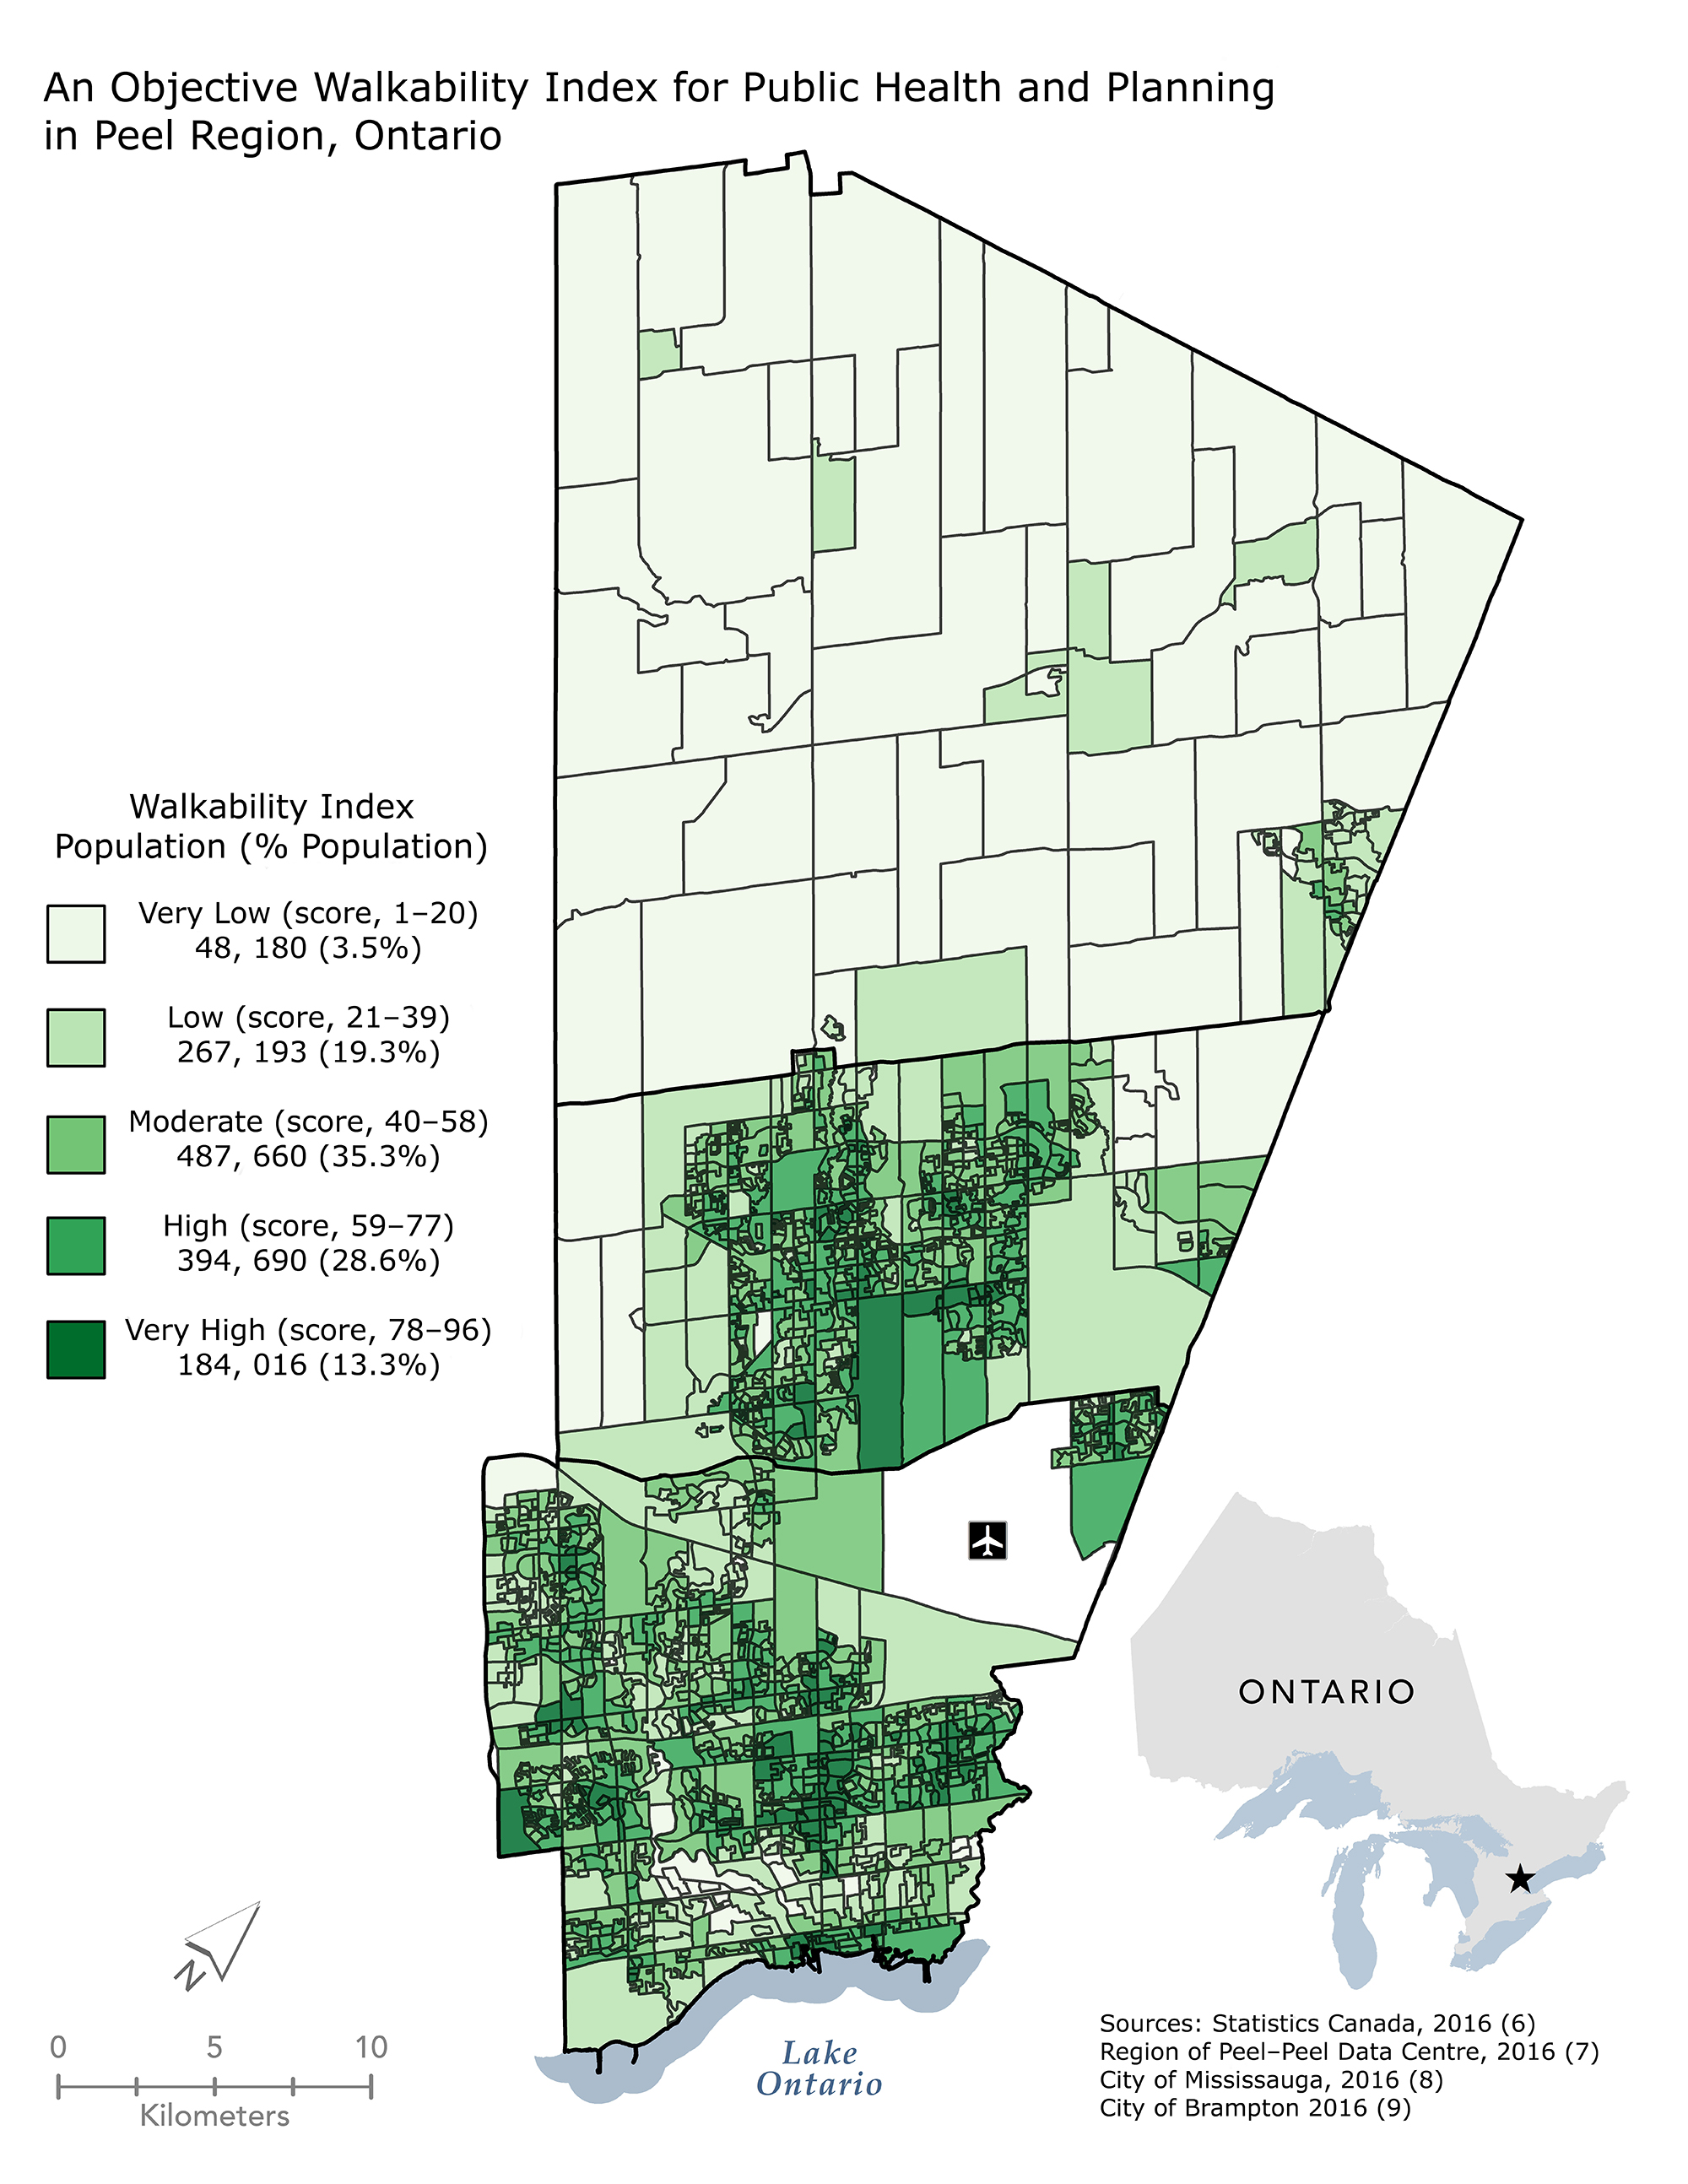 High levels of walkability are concentrated around urban core areas of Peel Region; specifically, the south-central and north-central portions of Peel Region. High levels of walkability are also present in the southern and southwestern portions of Peel Region. As distance increases from the urban cores, the levels of walkability tend to decrease. The areas of northern Peel Region typically have low walkability because of the presence of agricultural and rural land uses.